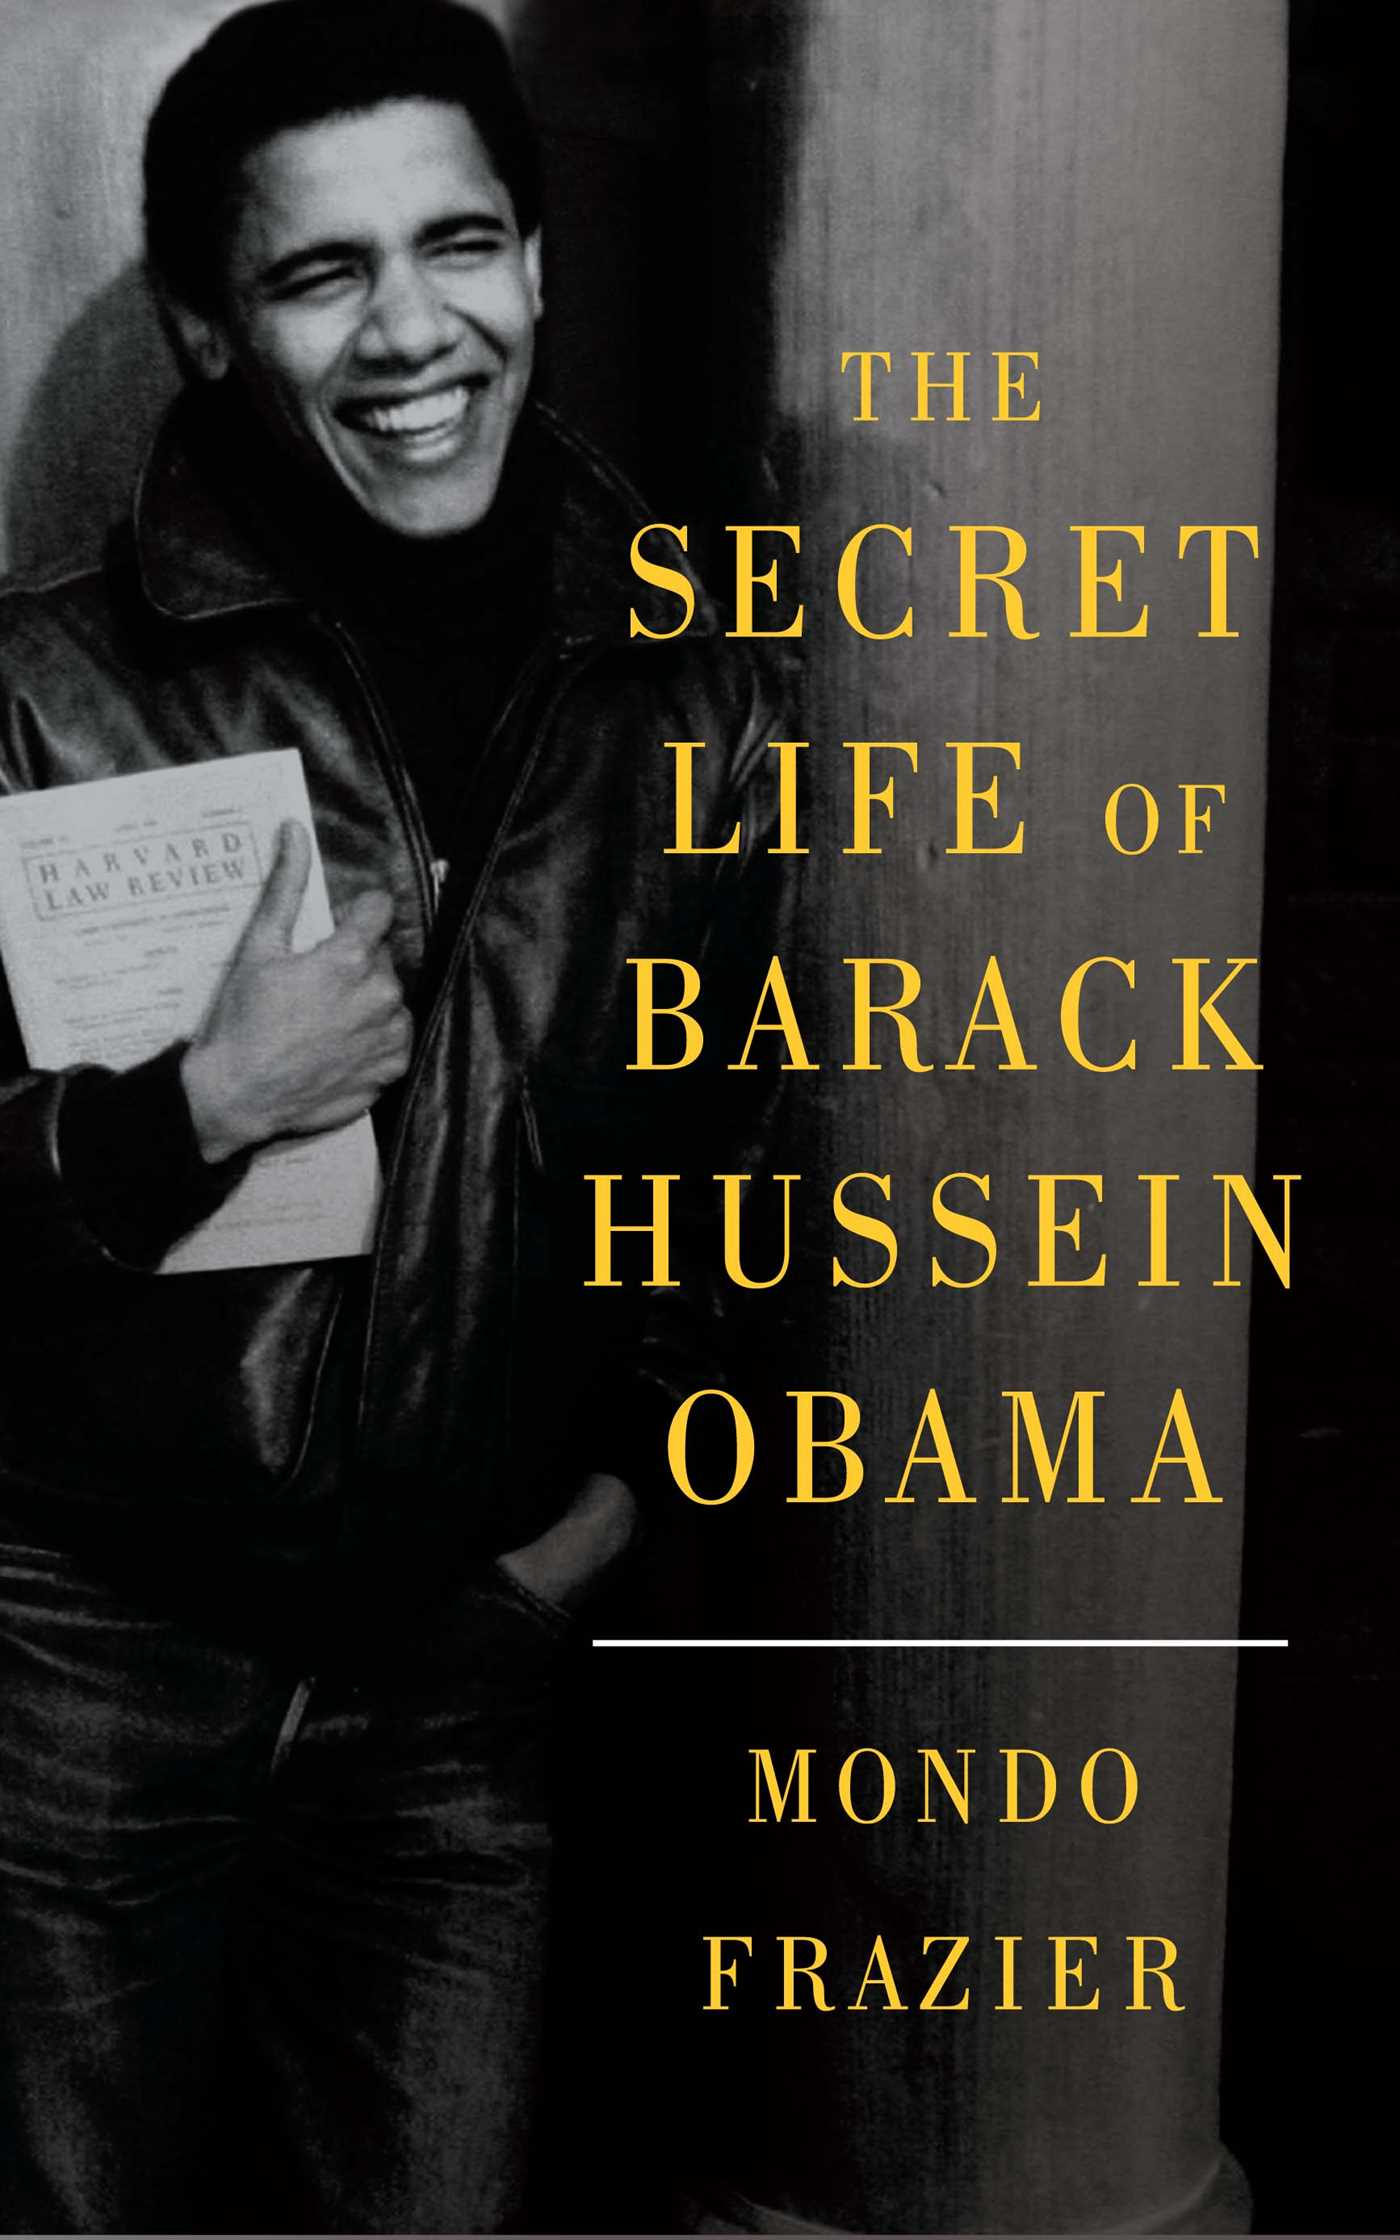 Secret-life-of-barack-hussein-obama-9781451633191_hr